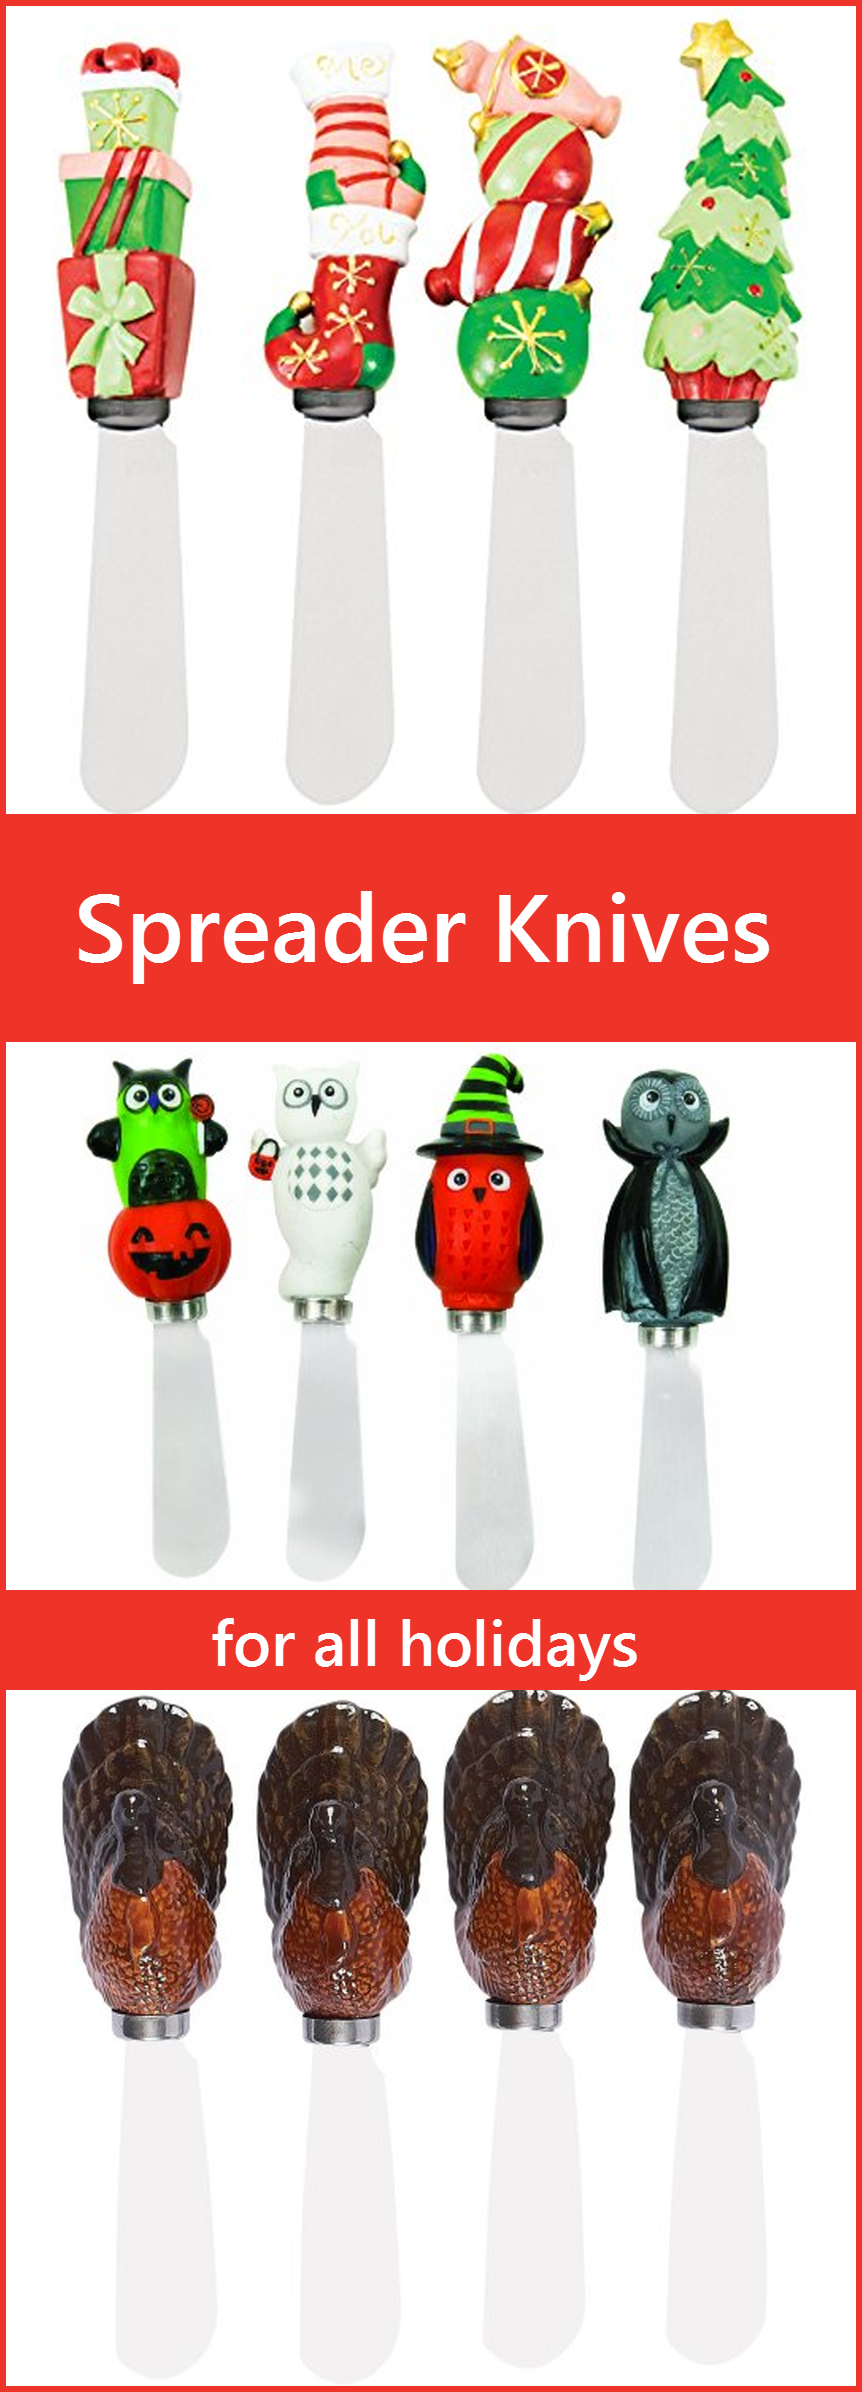 Butter Spreaders Cheese Knife Sets - Unique and fun for all holidays, parties, and more. Great gift idea.